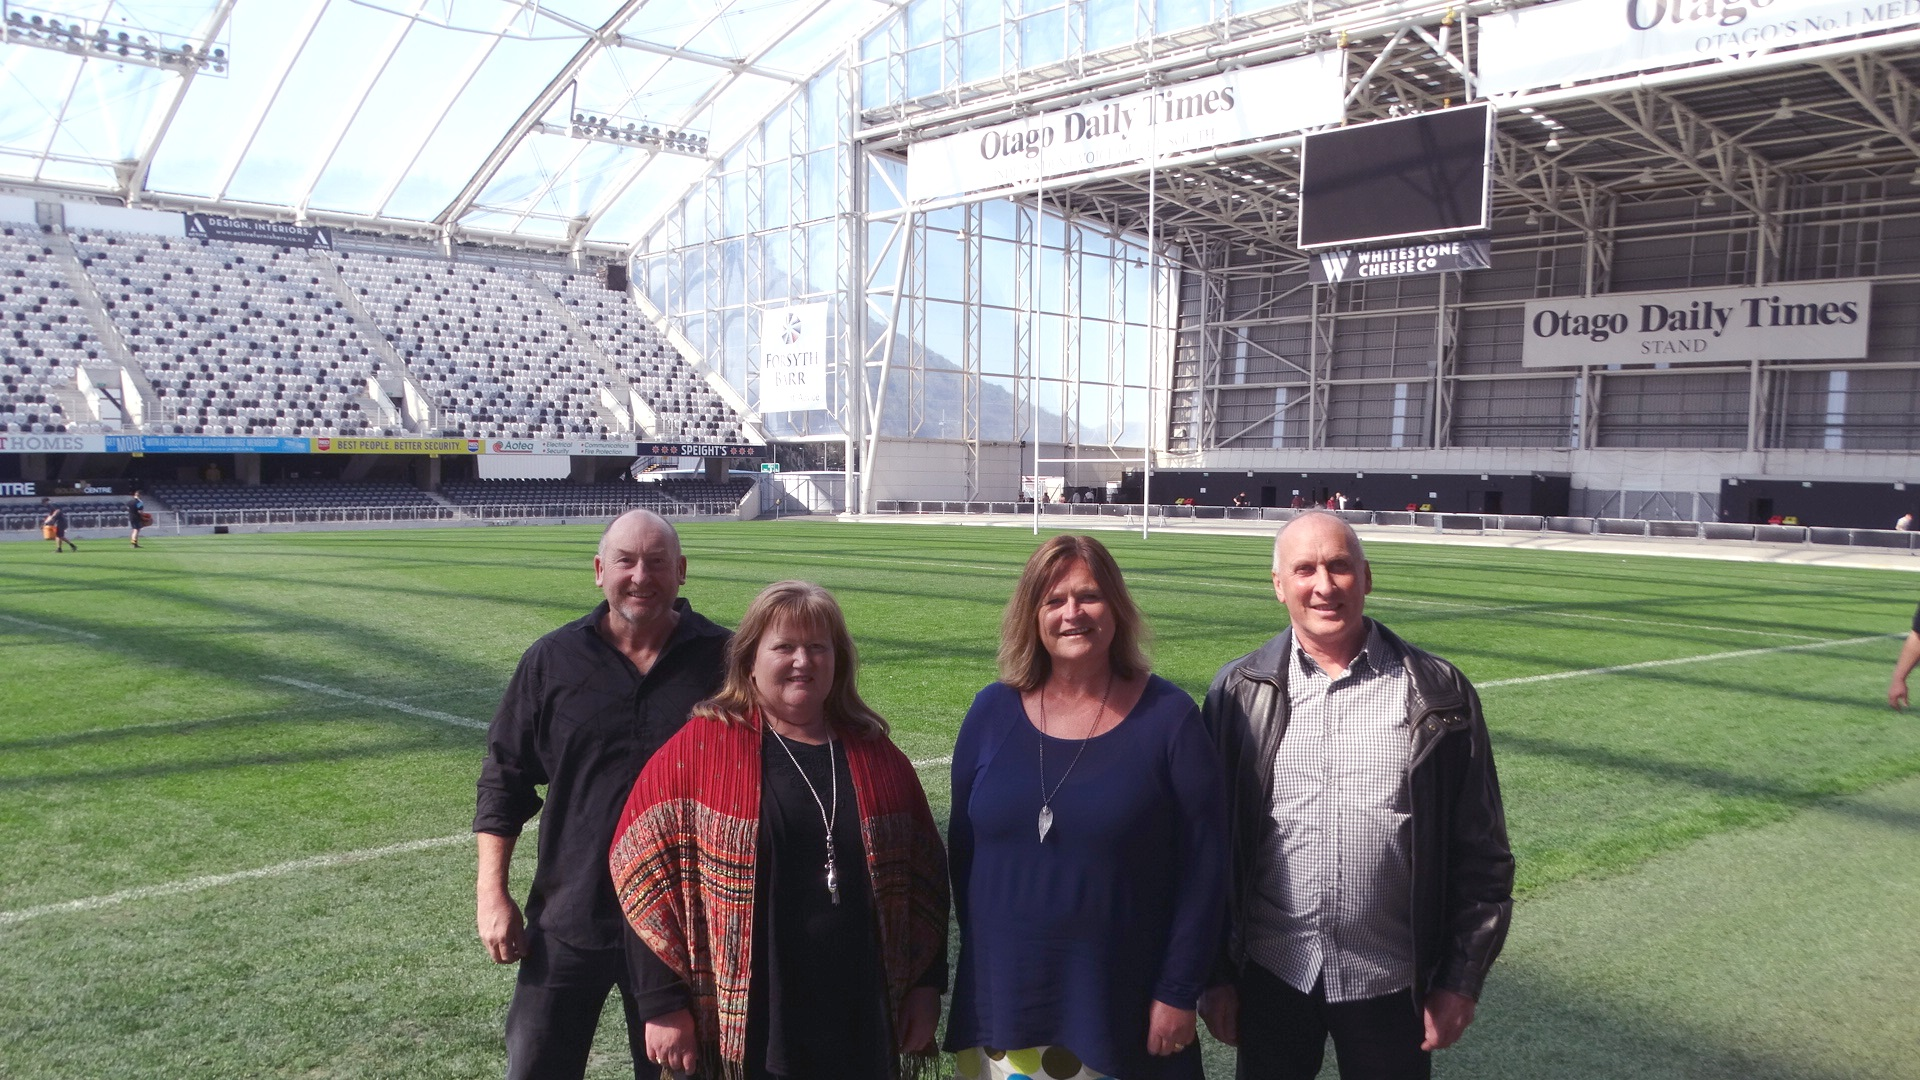 Christmas in Stadium' event | Otago Daily Times Online News